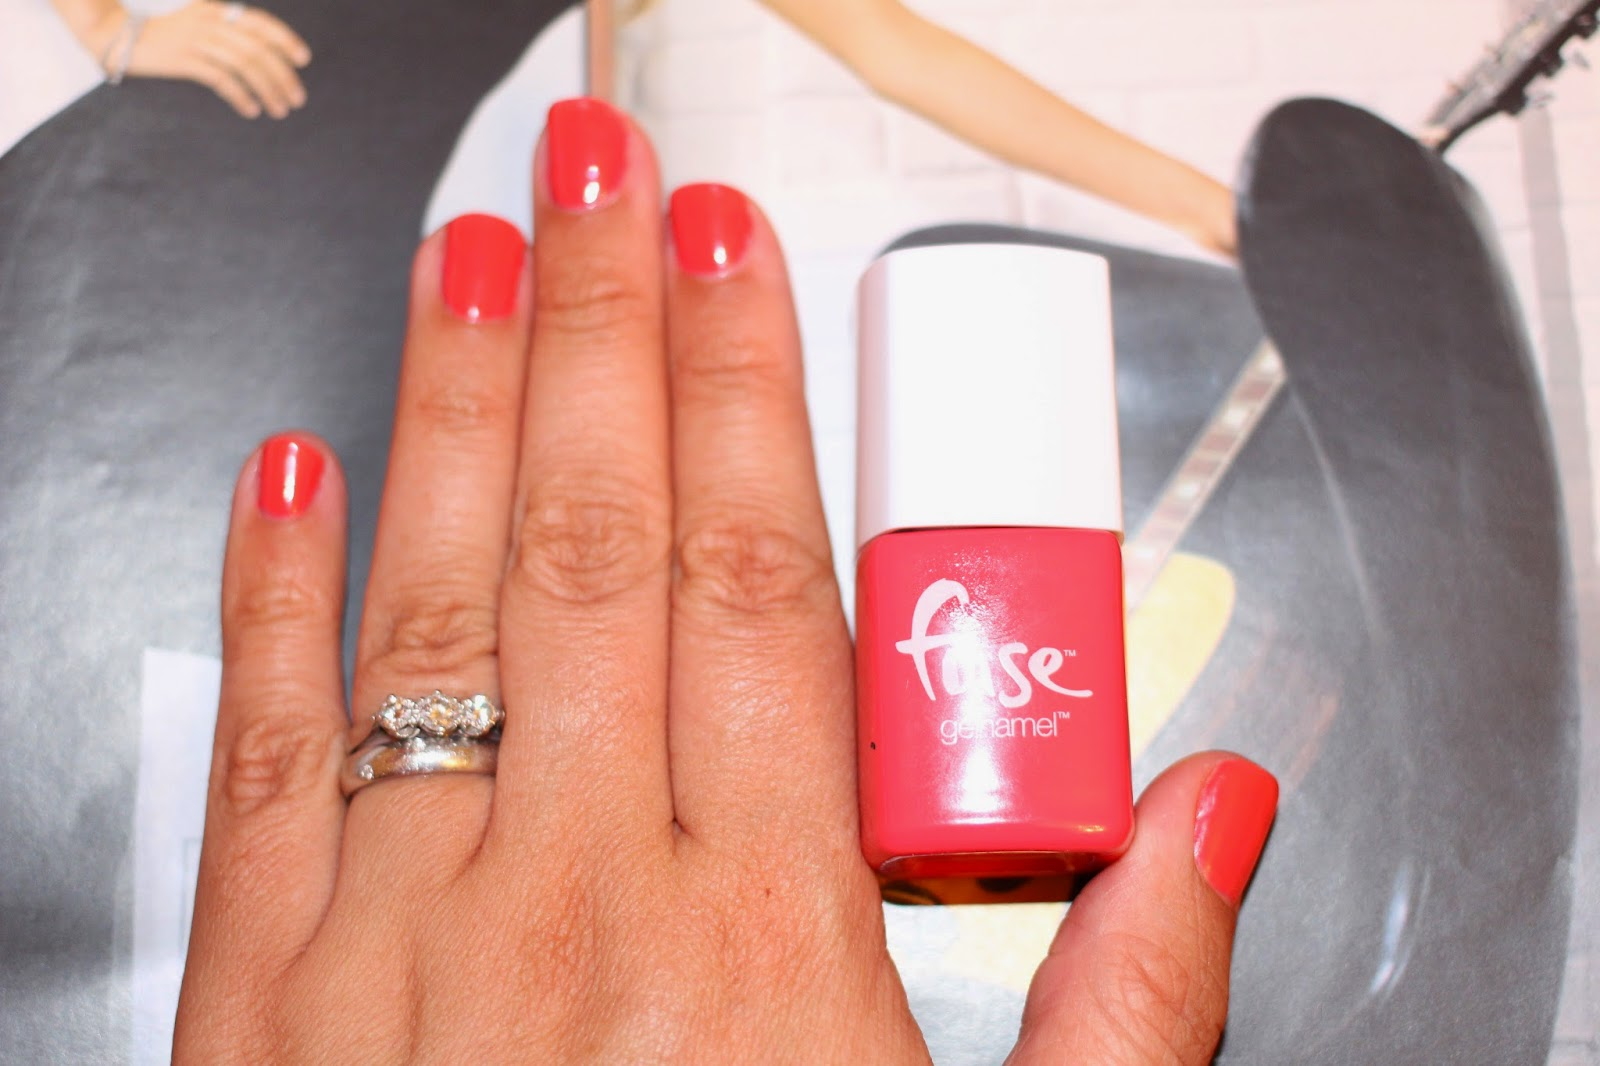 WHAT\'S ON MY NAILS : FUSE ELECTRIC OR TREAT GEL NAILS - MyBeautySleuth